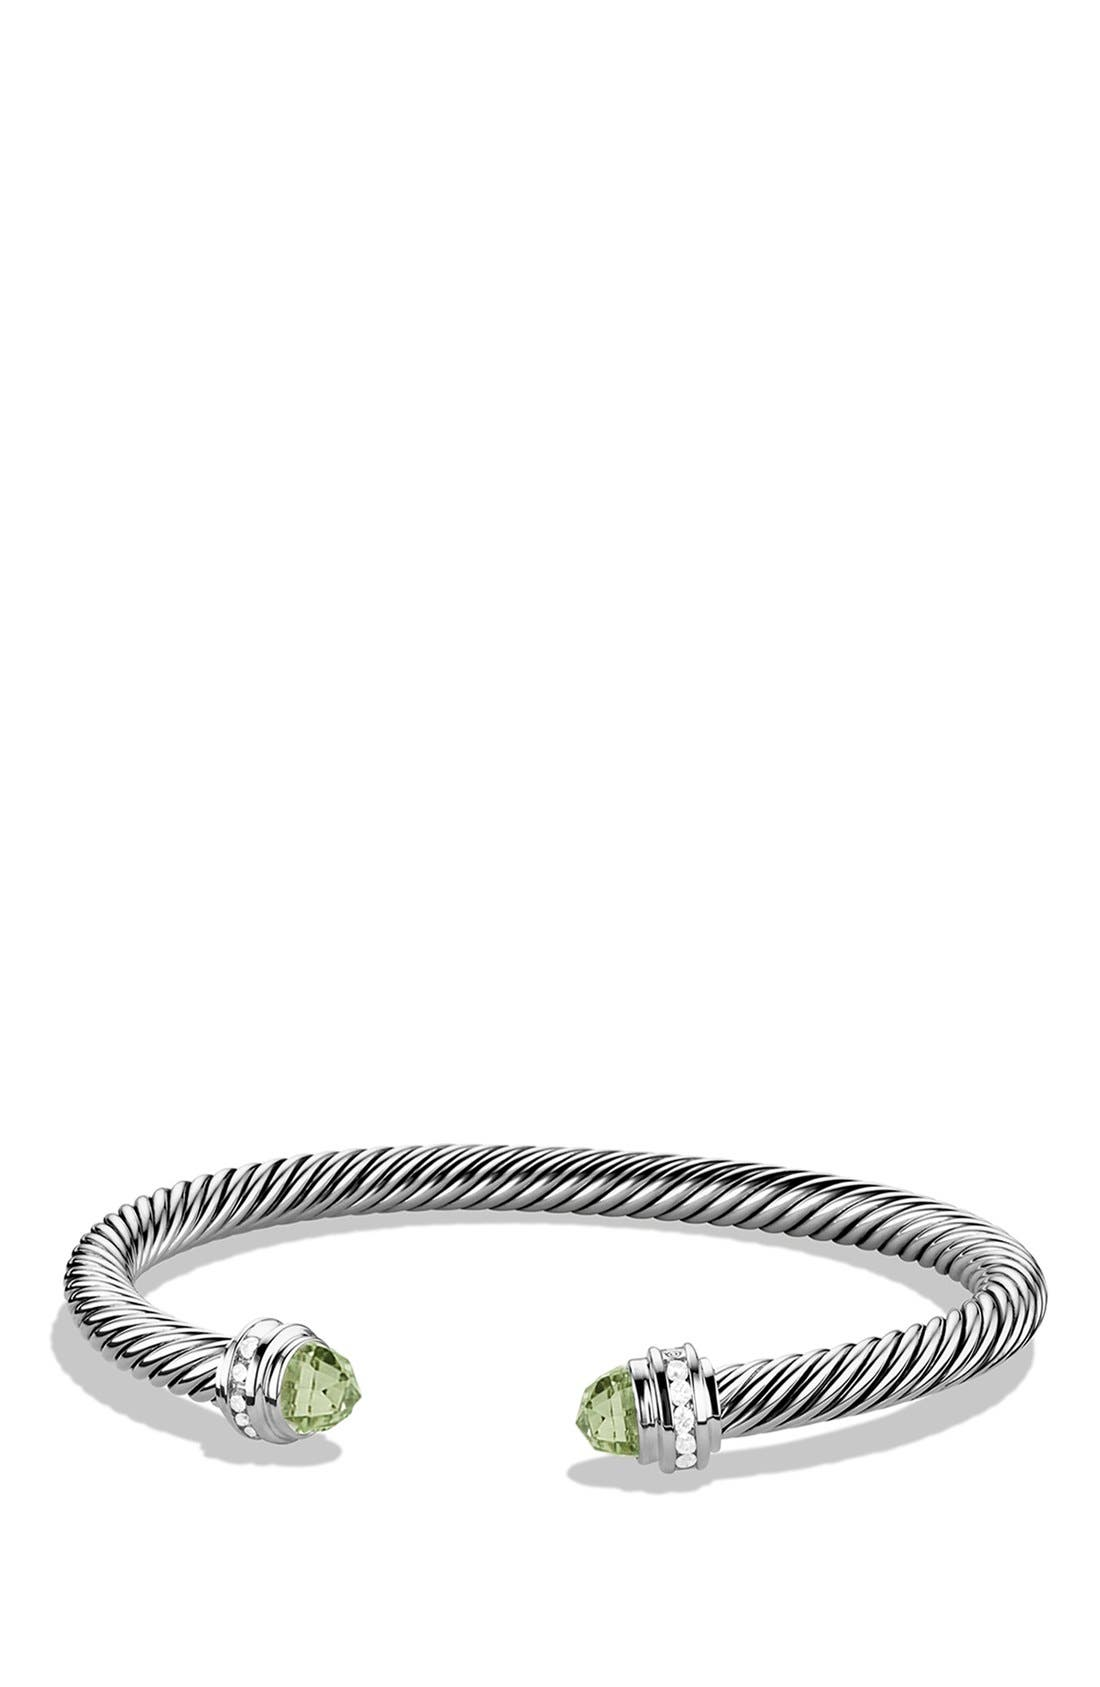 Alternate Image 1 Selected - David Yurman 'Cable Classics' Bracelet with Semiprecious Stones & Diamonds